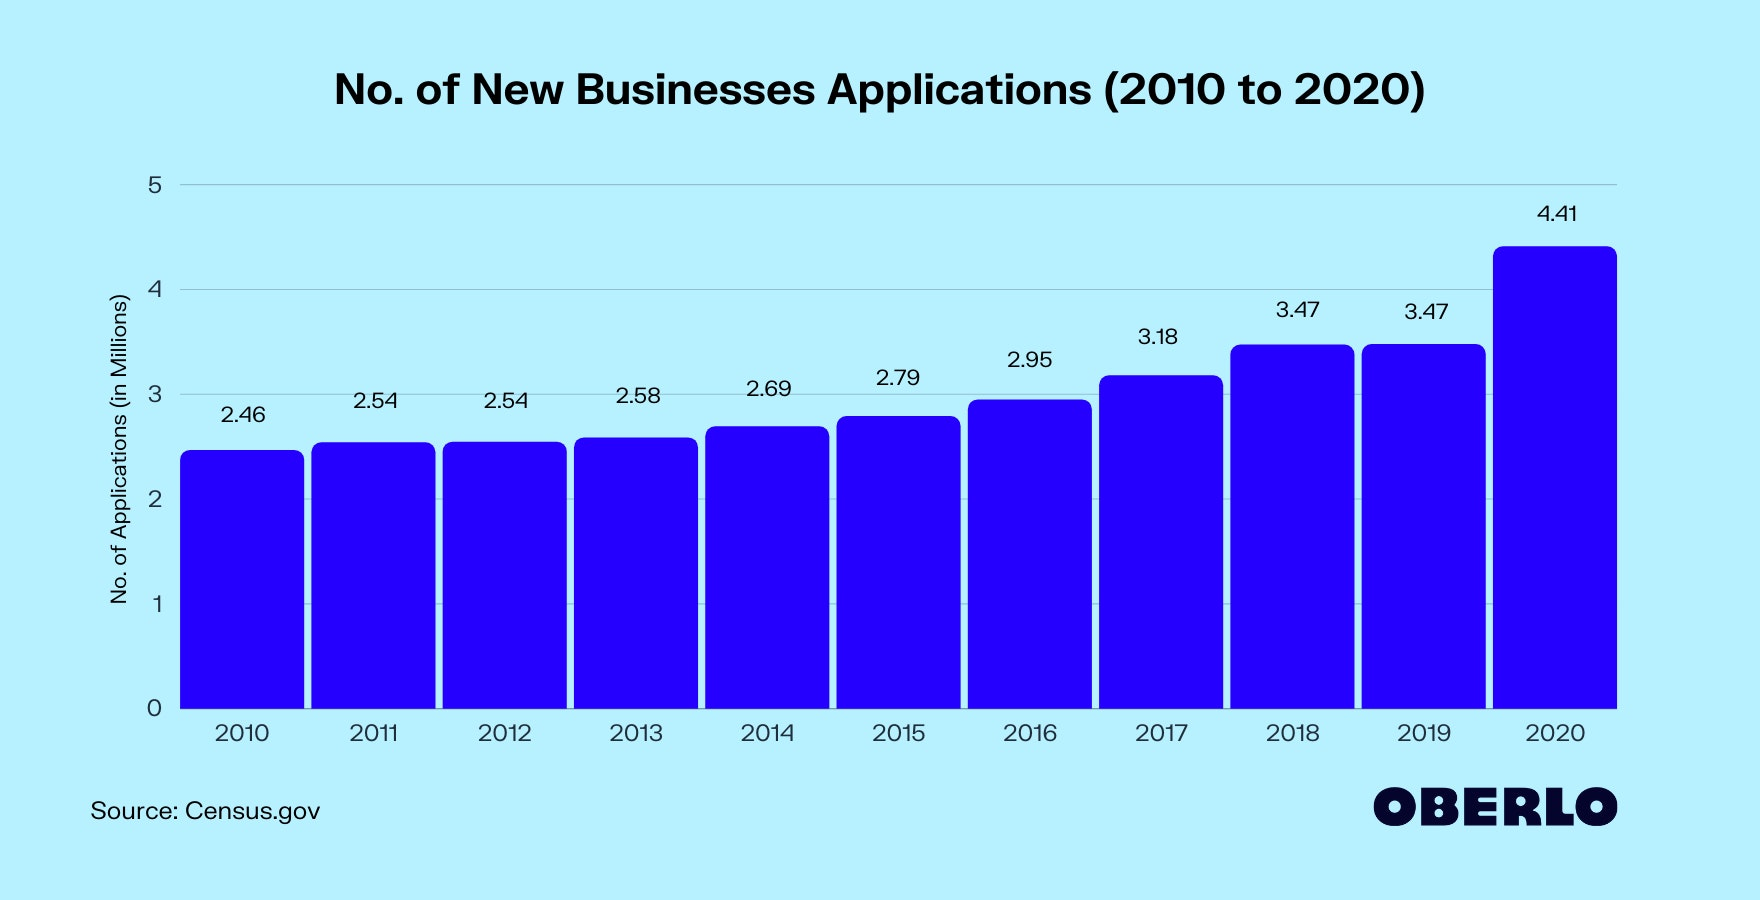 No. of New Businesses Applications (2010 to 2020)